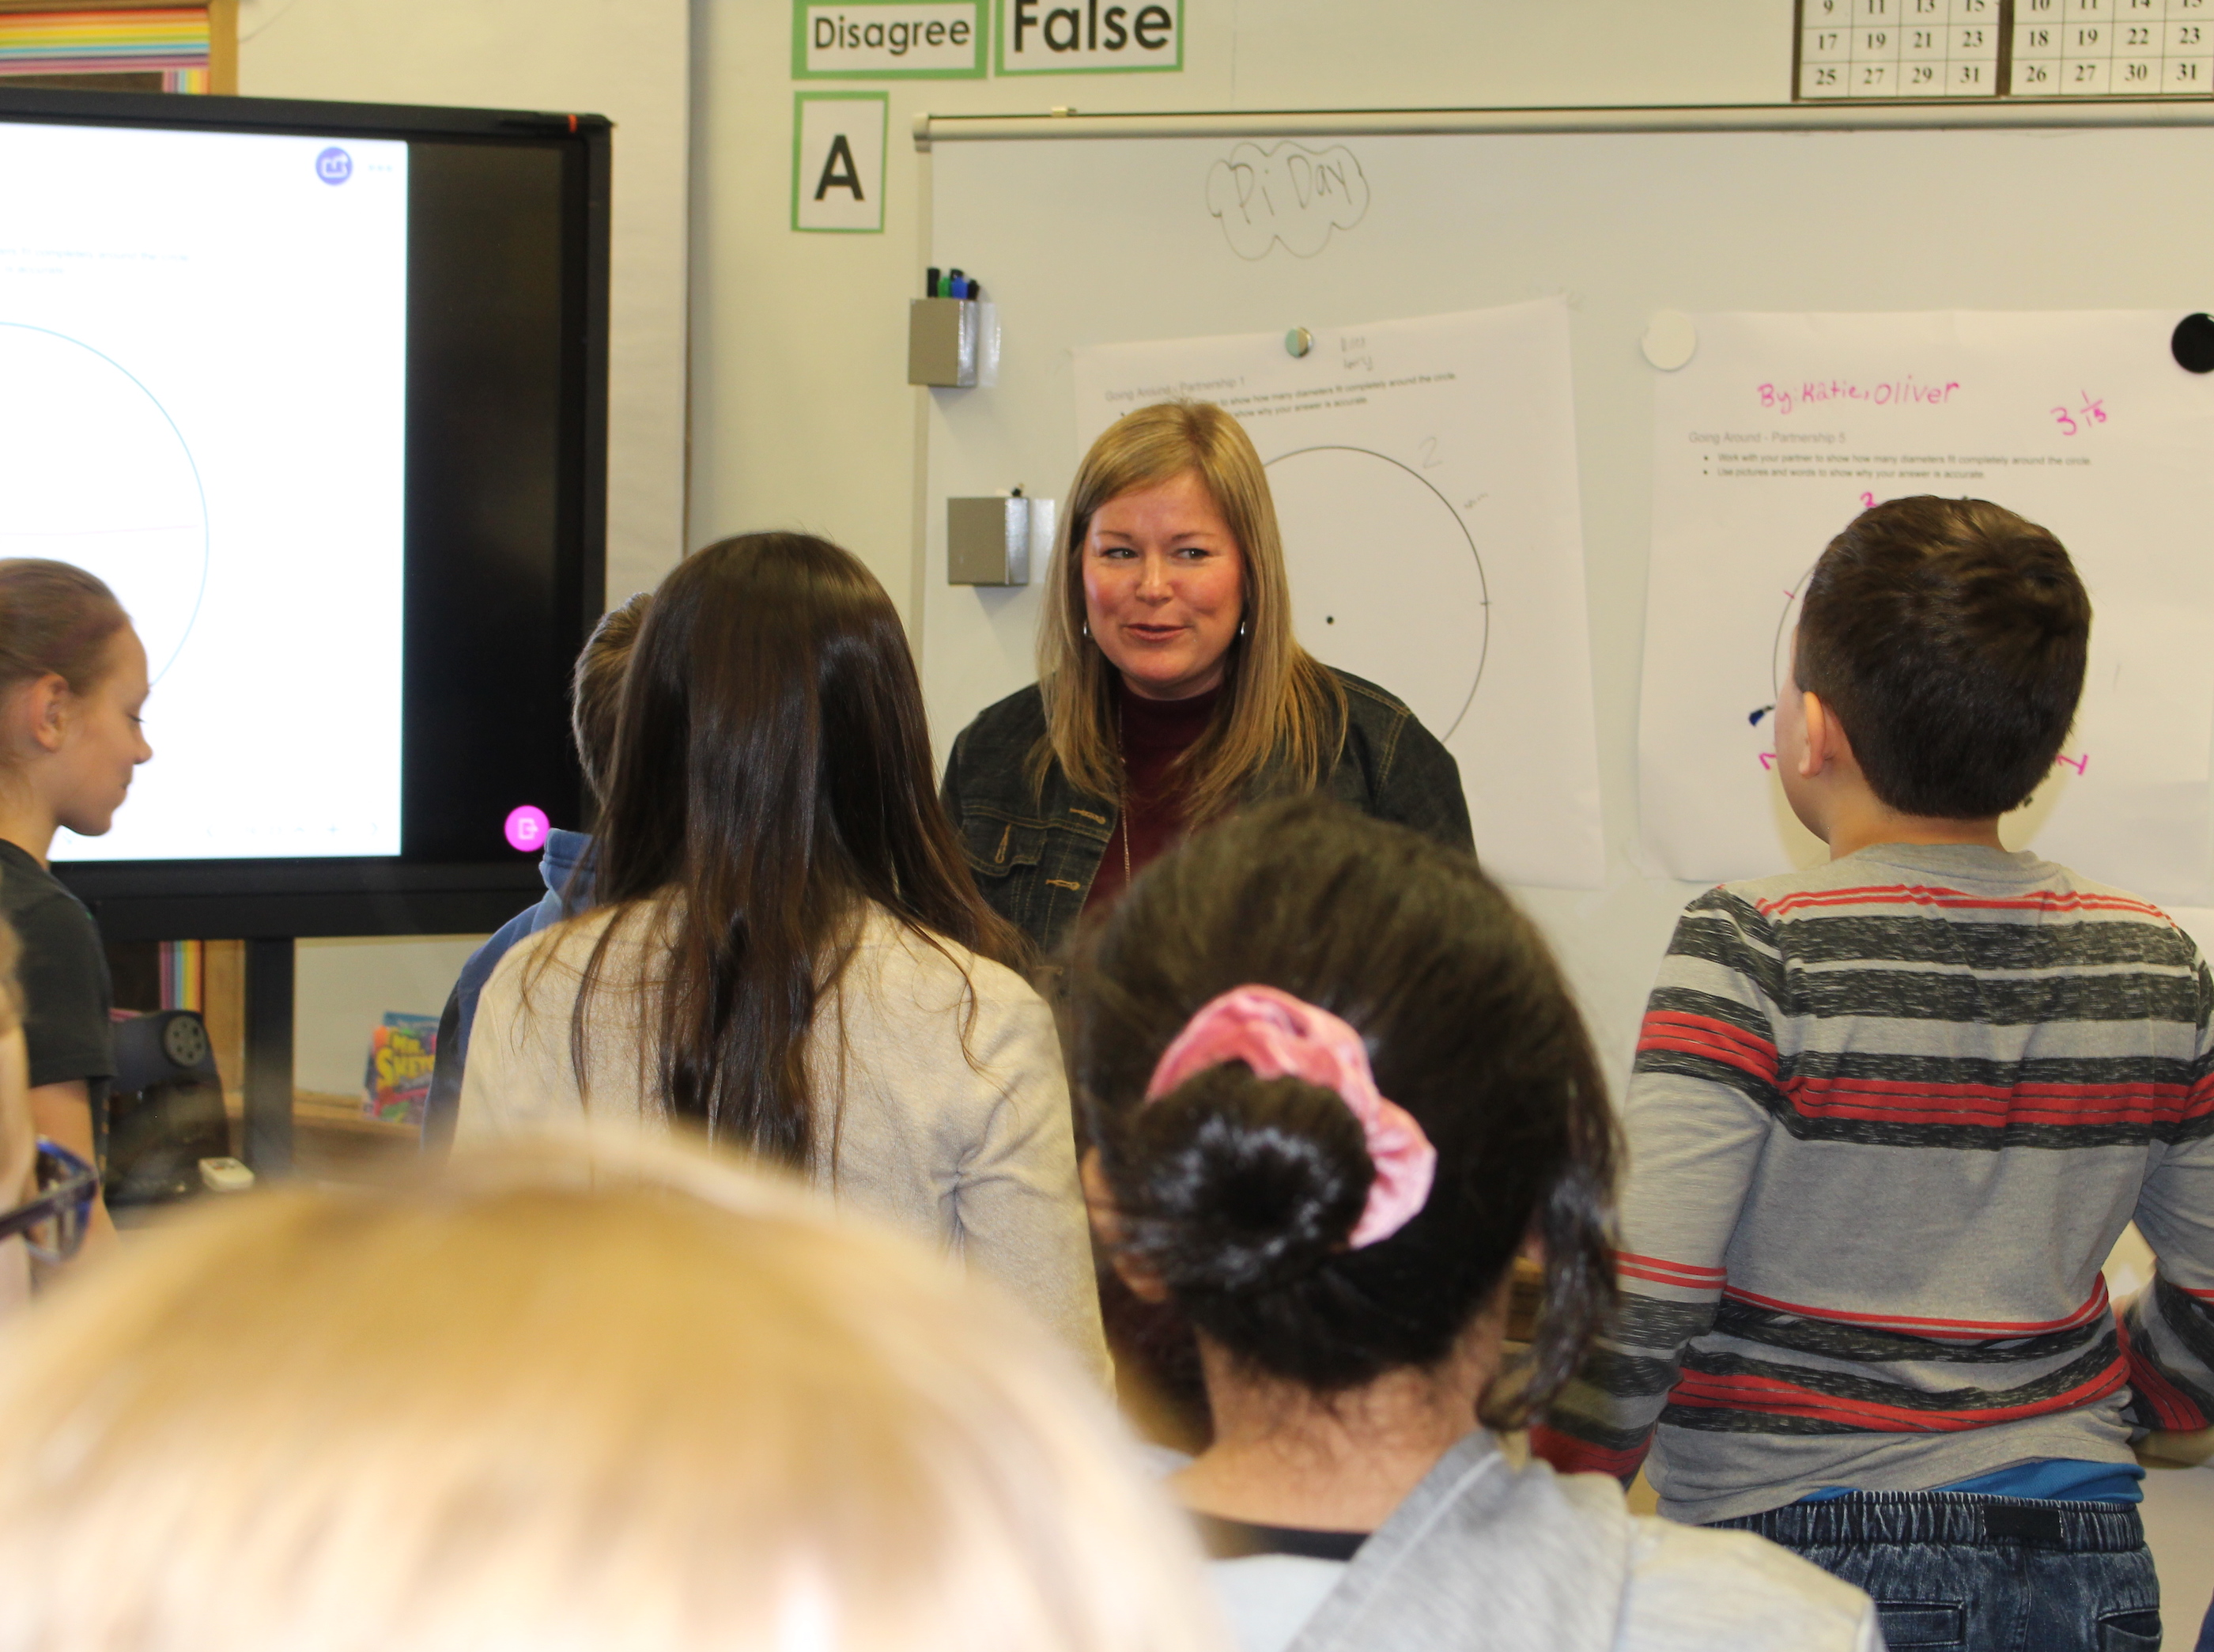 Rivard-Johnson leads her class in a focusing exercise during a recent lesson. Photo by Nate Gotlieb